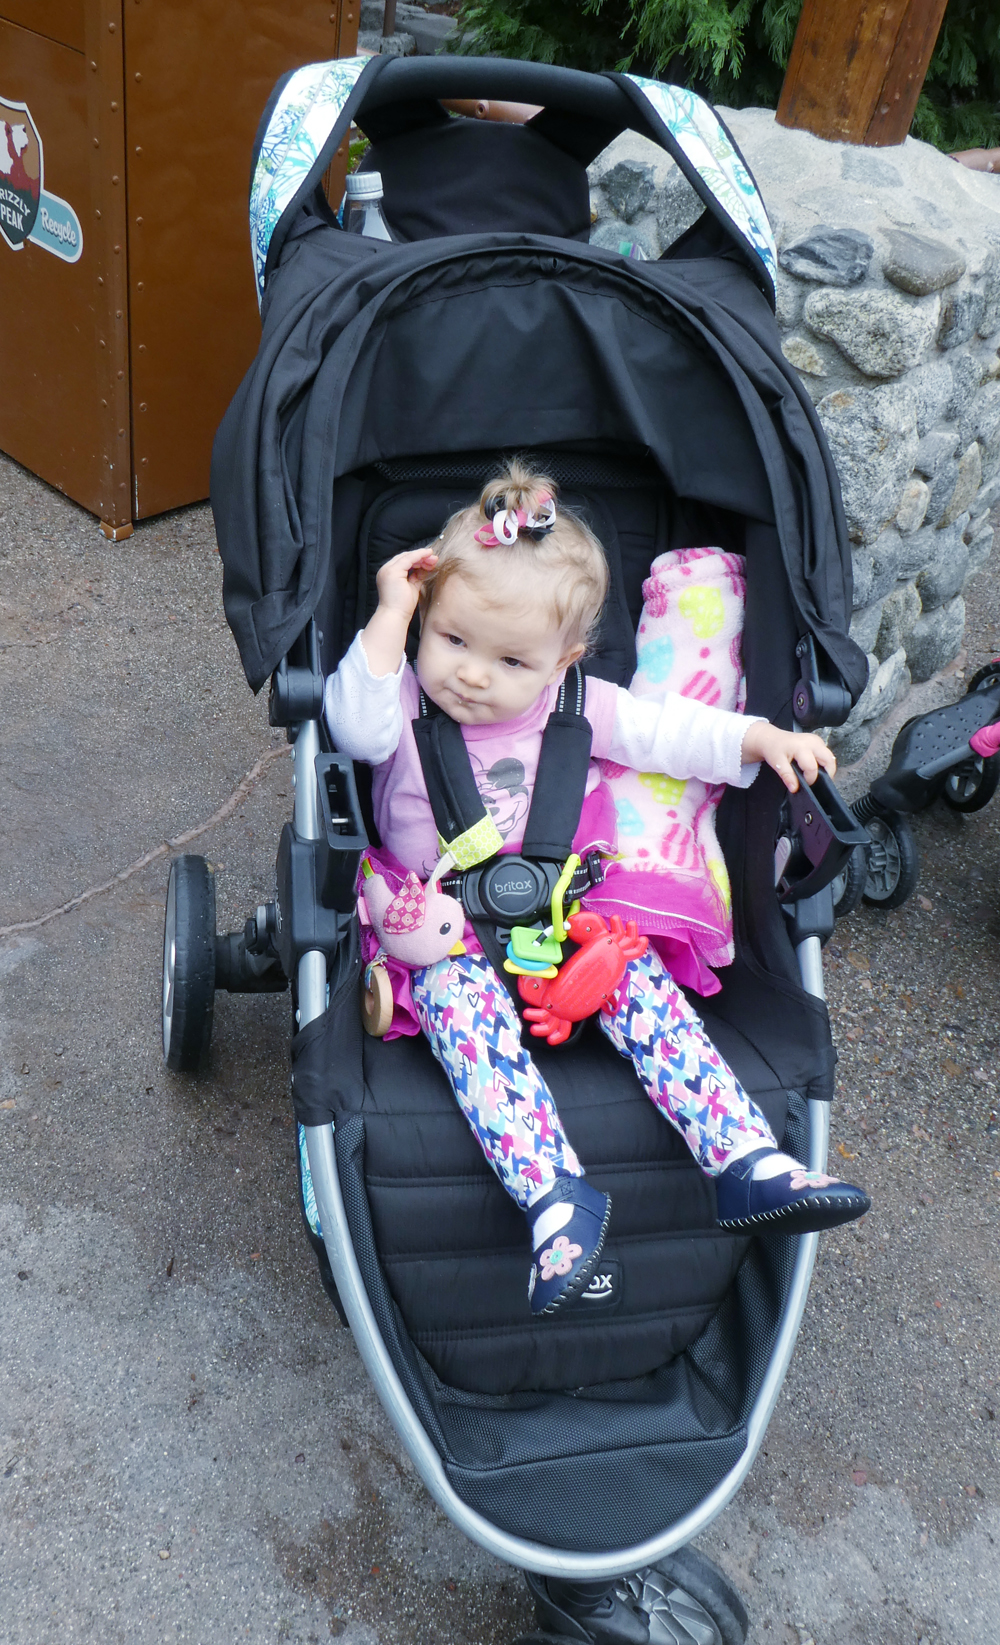 Tips for Strollers at Disney: Bring Your Own or Rent There?